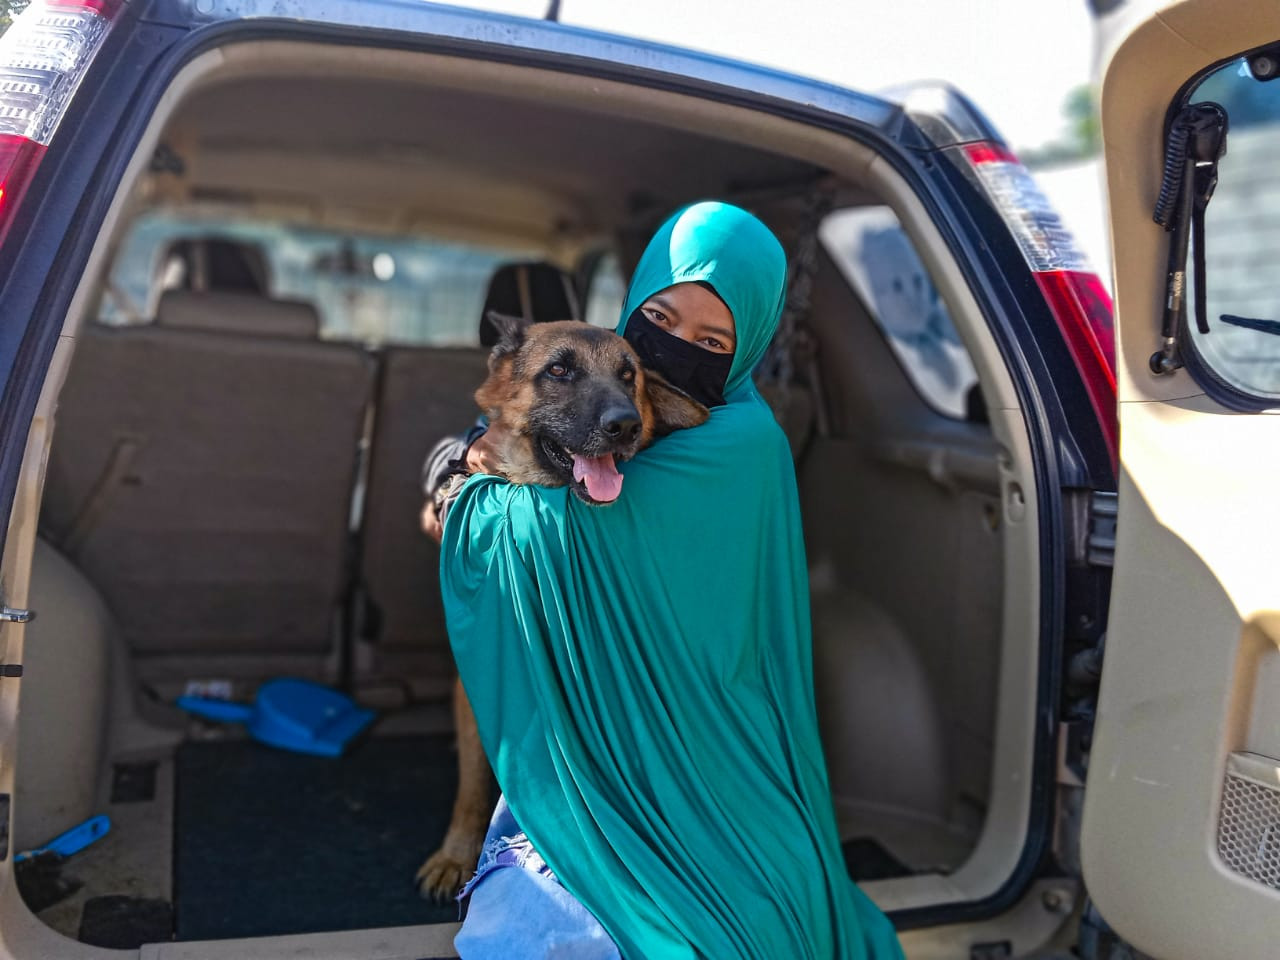 Muslim lady and the tramp: Meet the unlikely dog whisperer